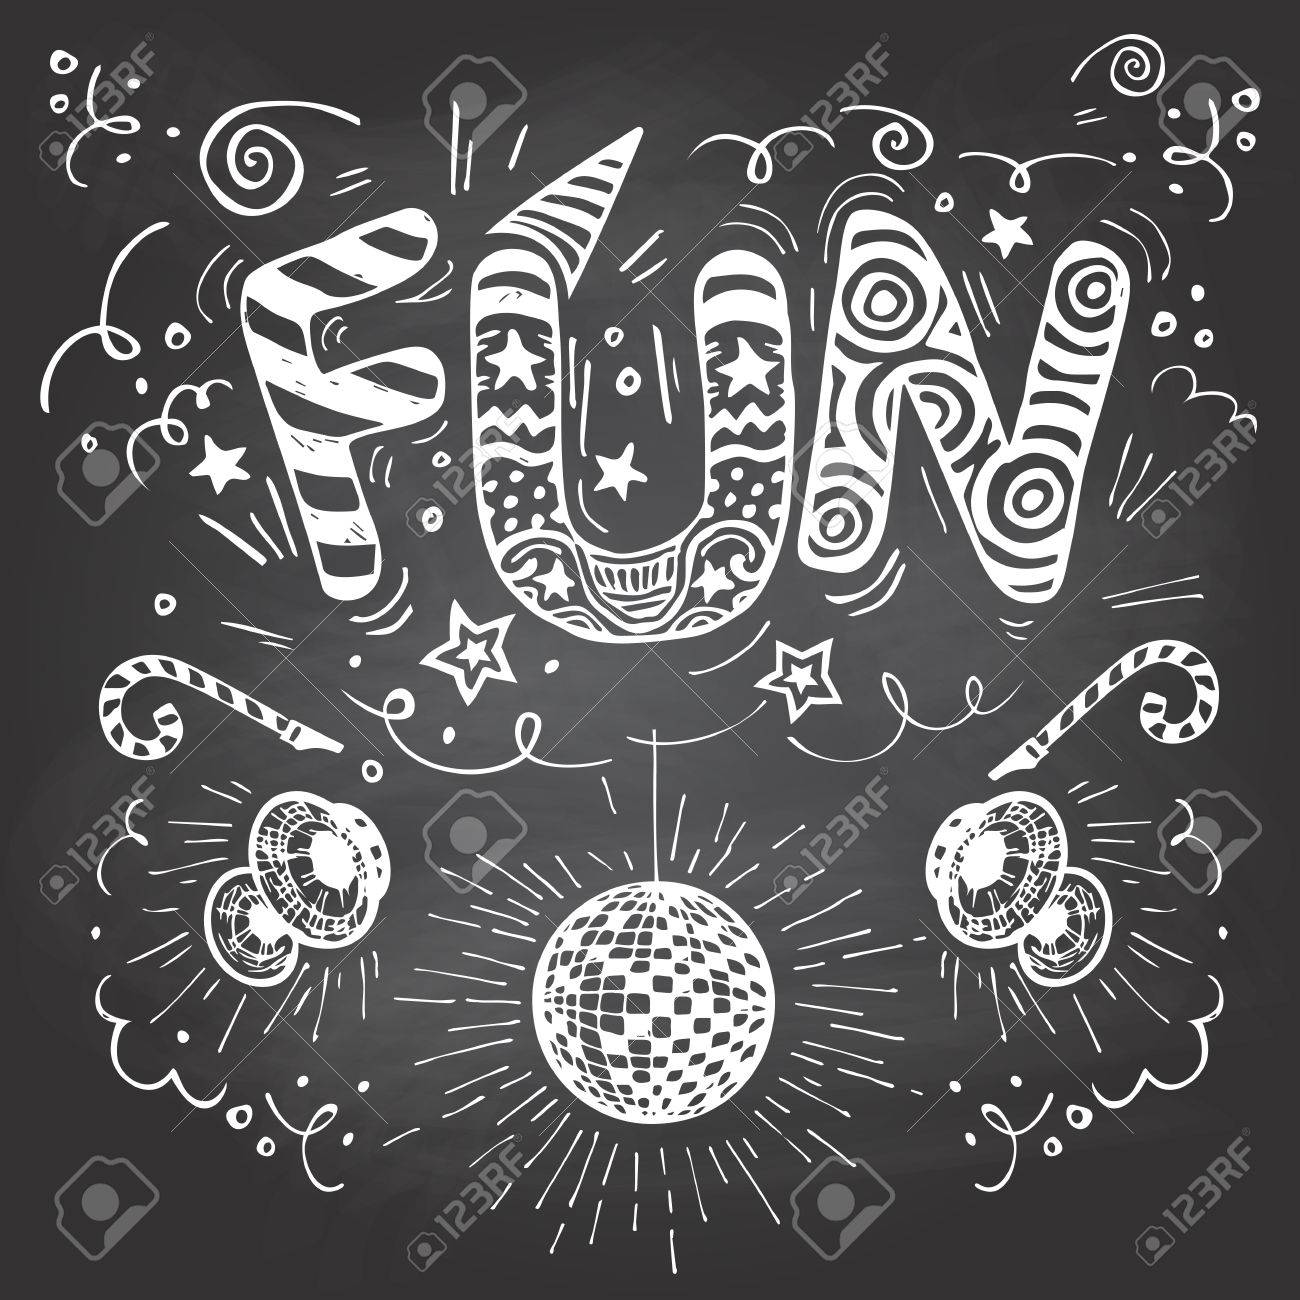 1300x1300 Fun Hand Lettering Typography With Hand Drawn Elements